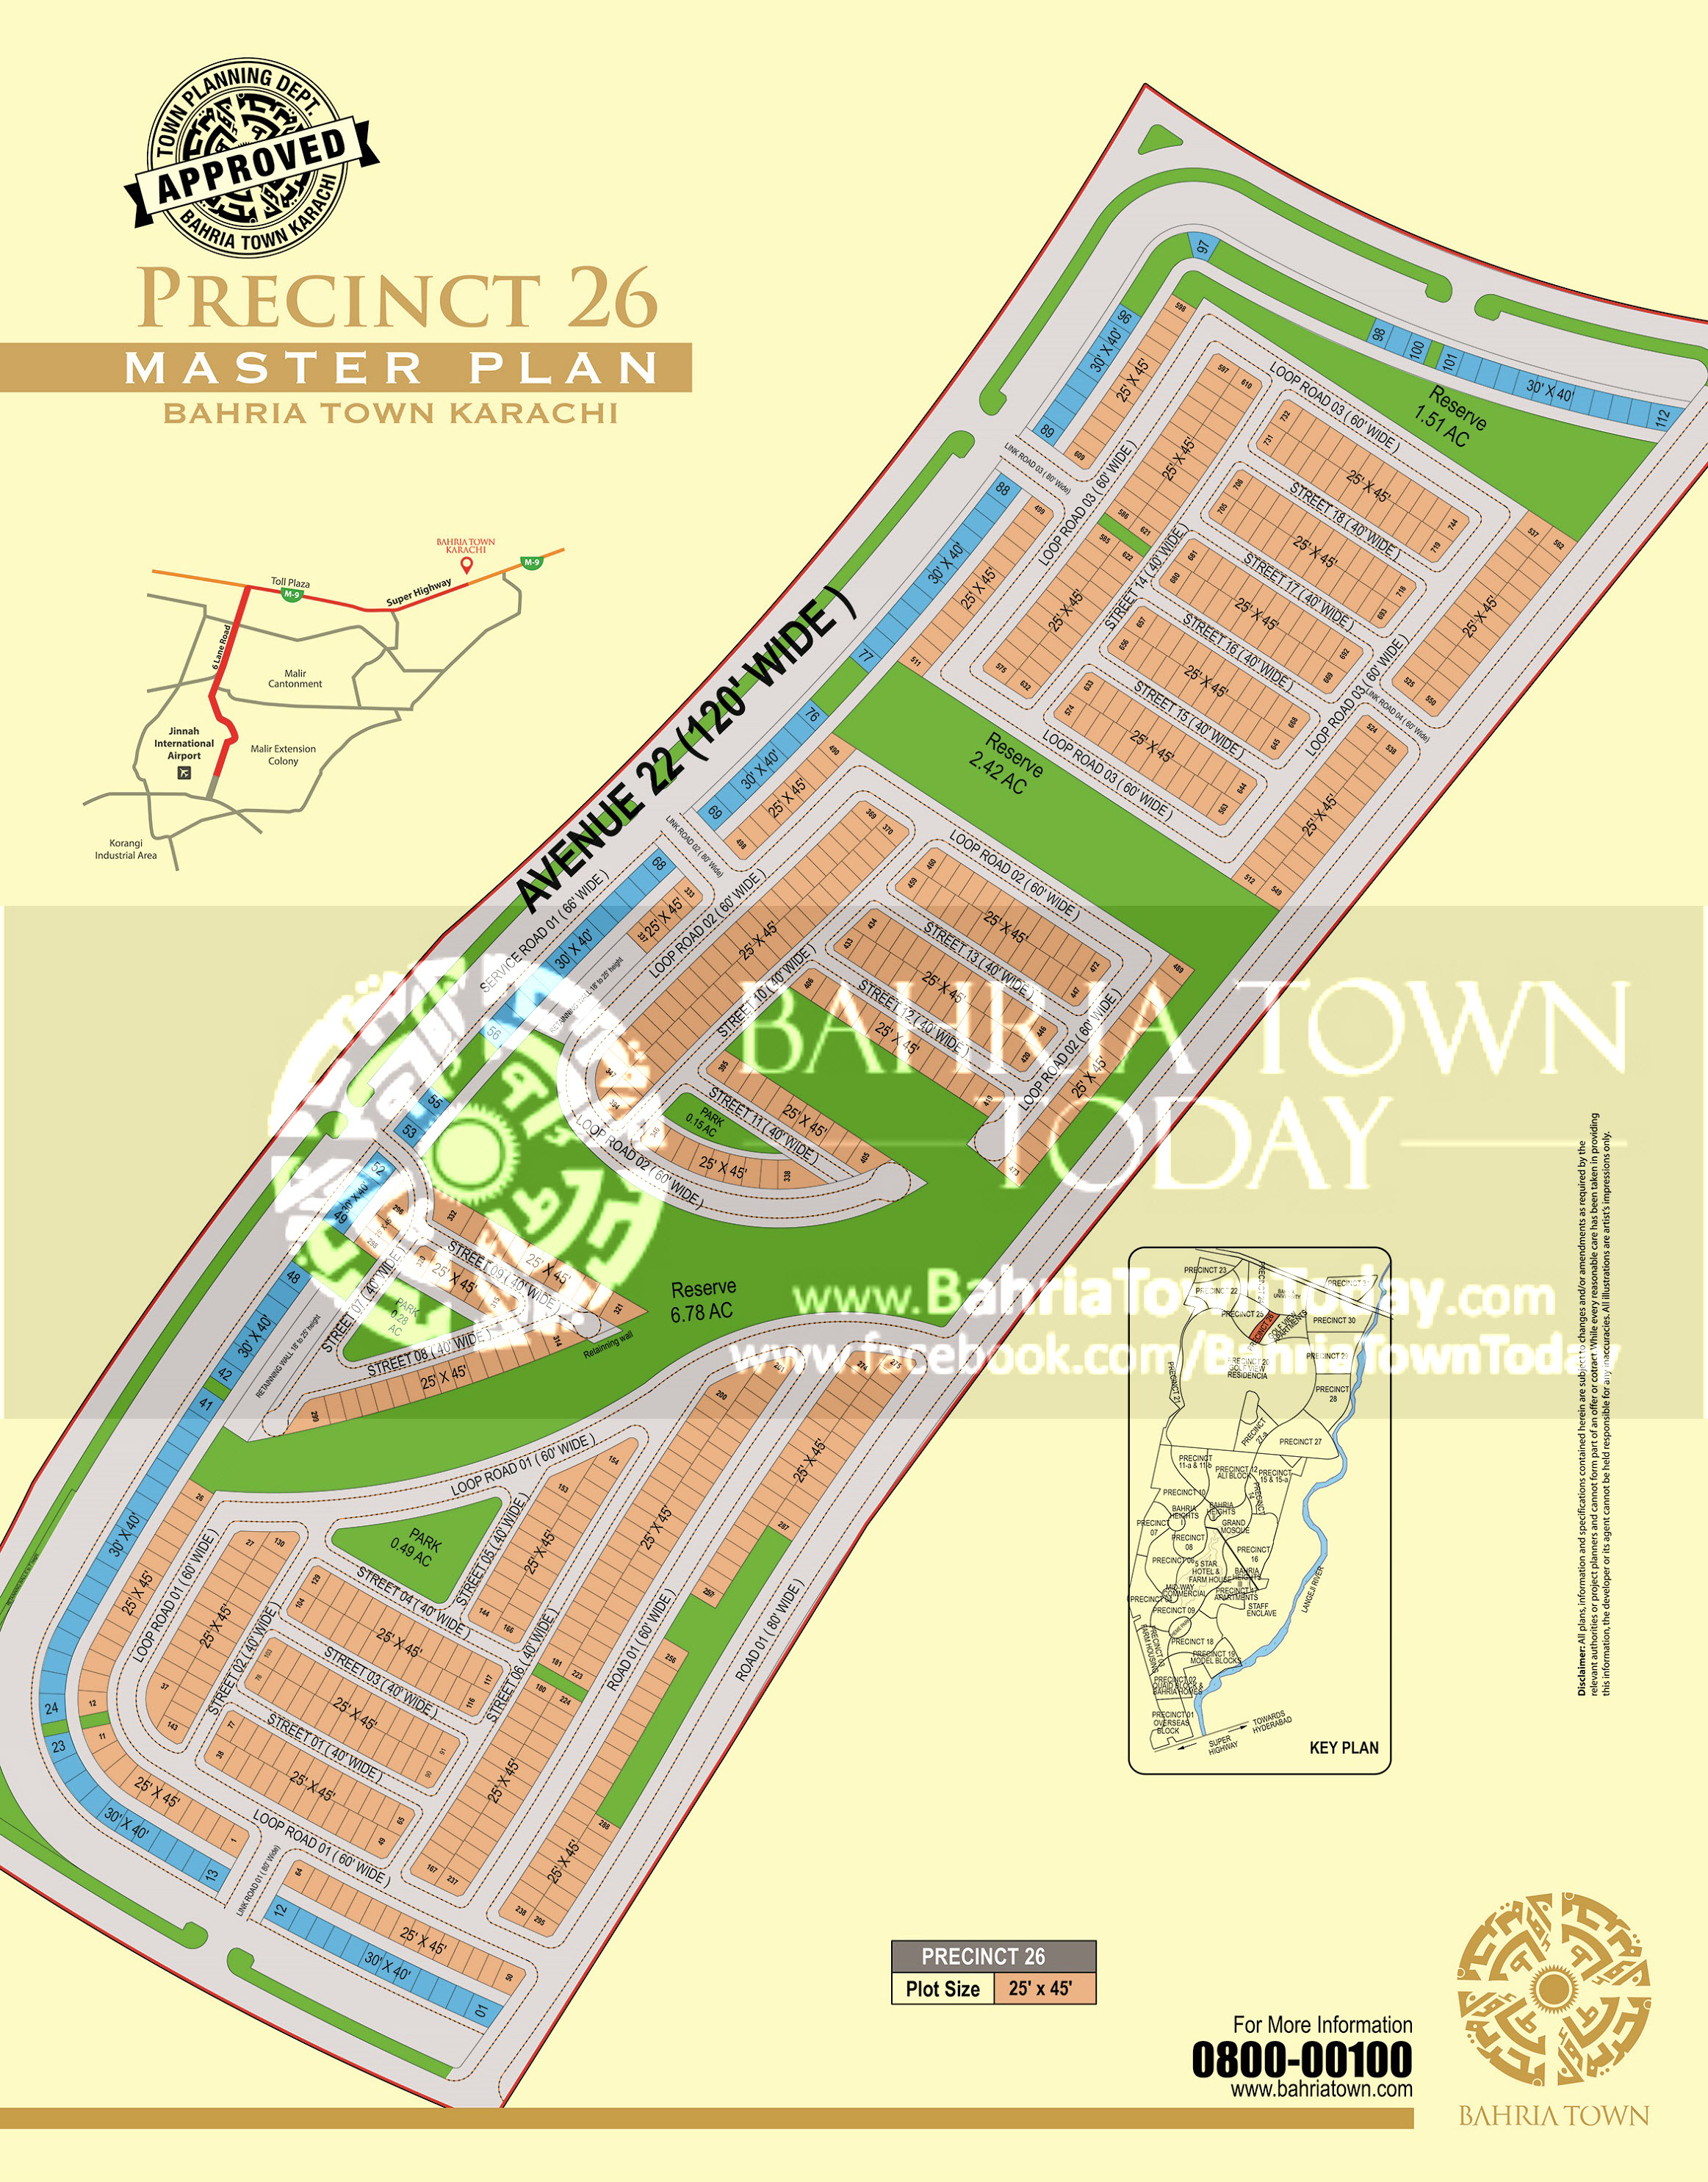 Bahria Town Karachi – Precinct 26 High Resolution Map